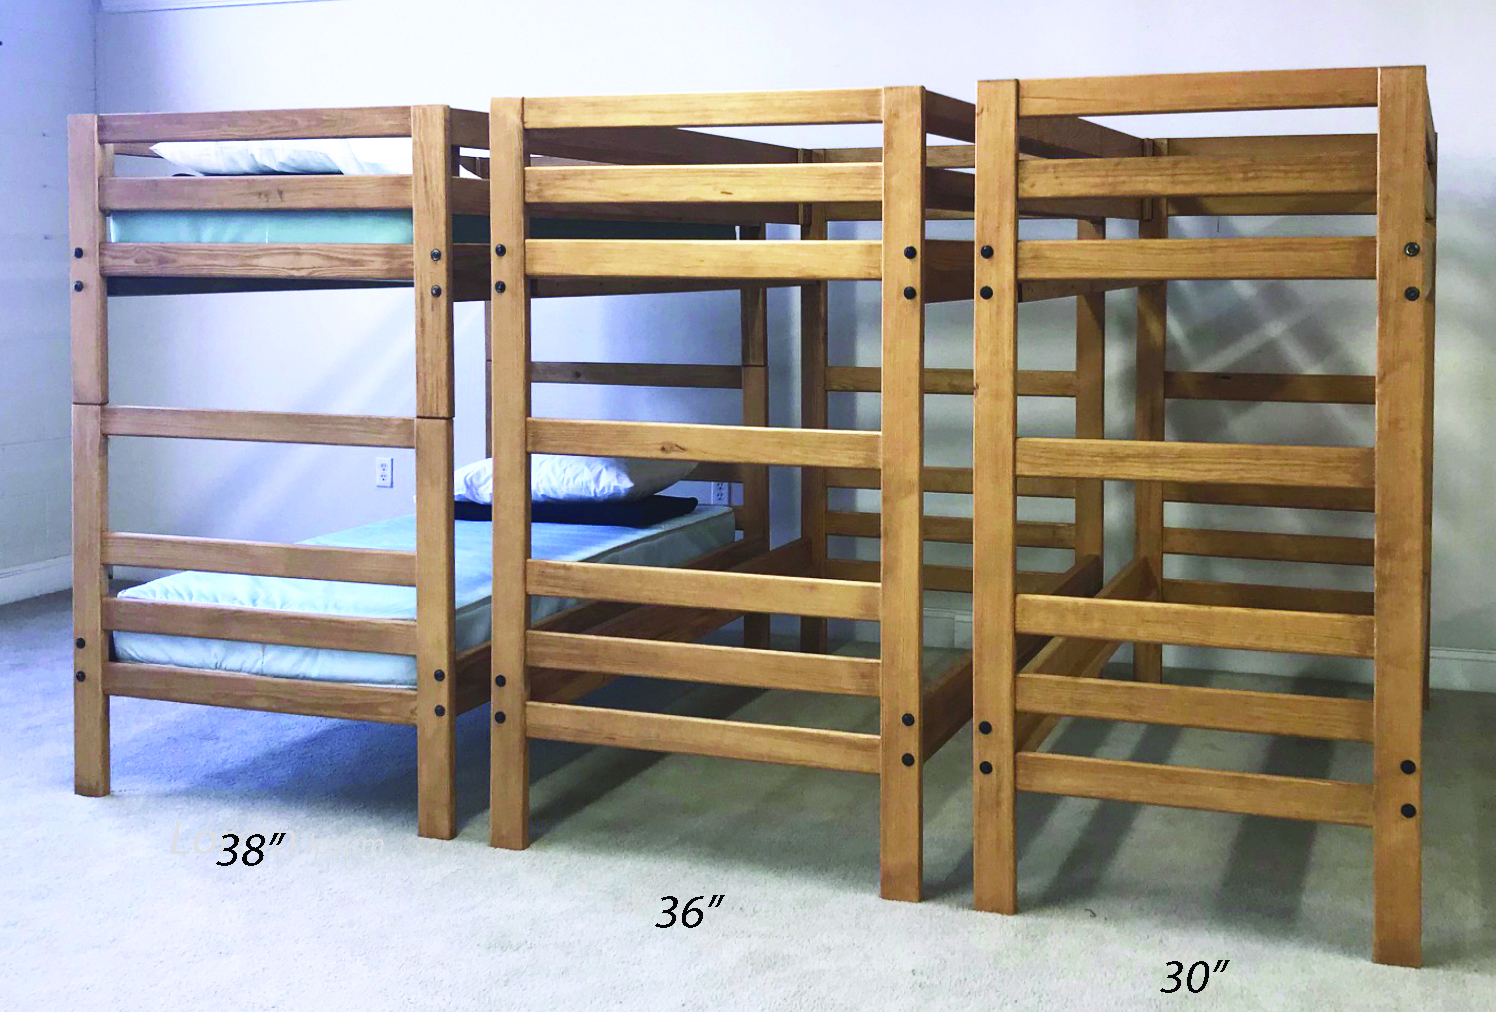 Camp Bunk with 3 sizes